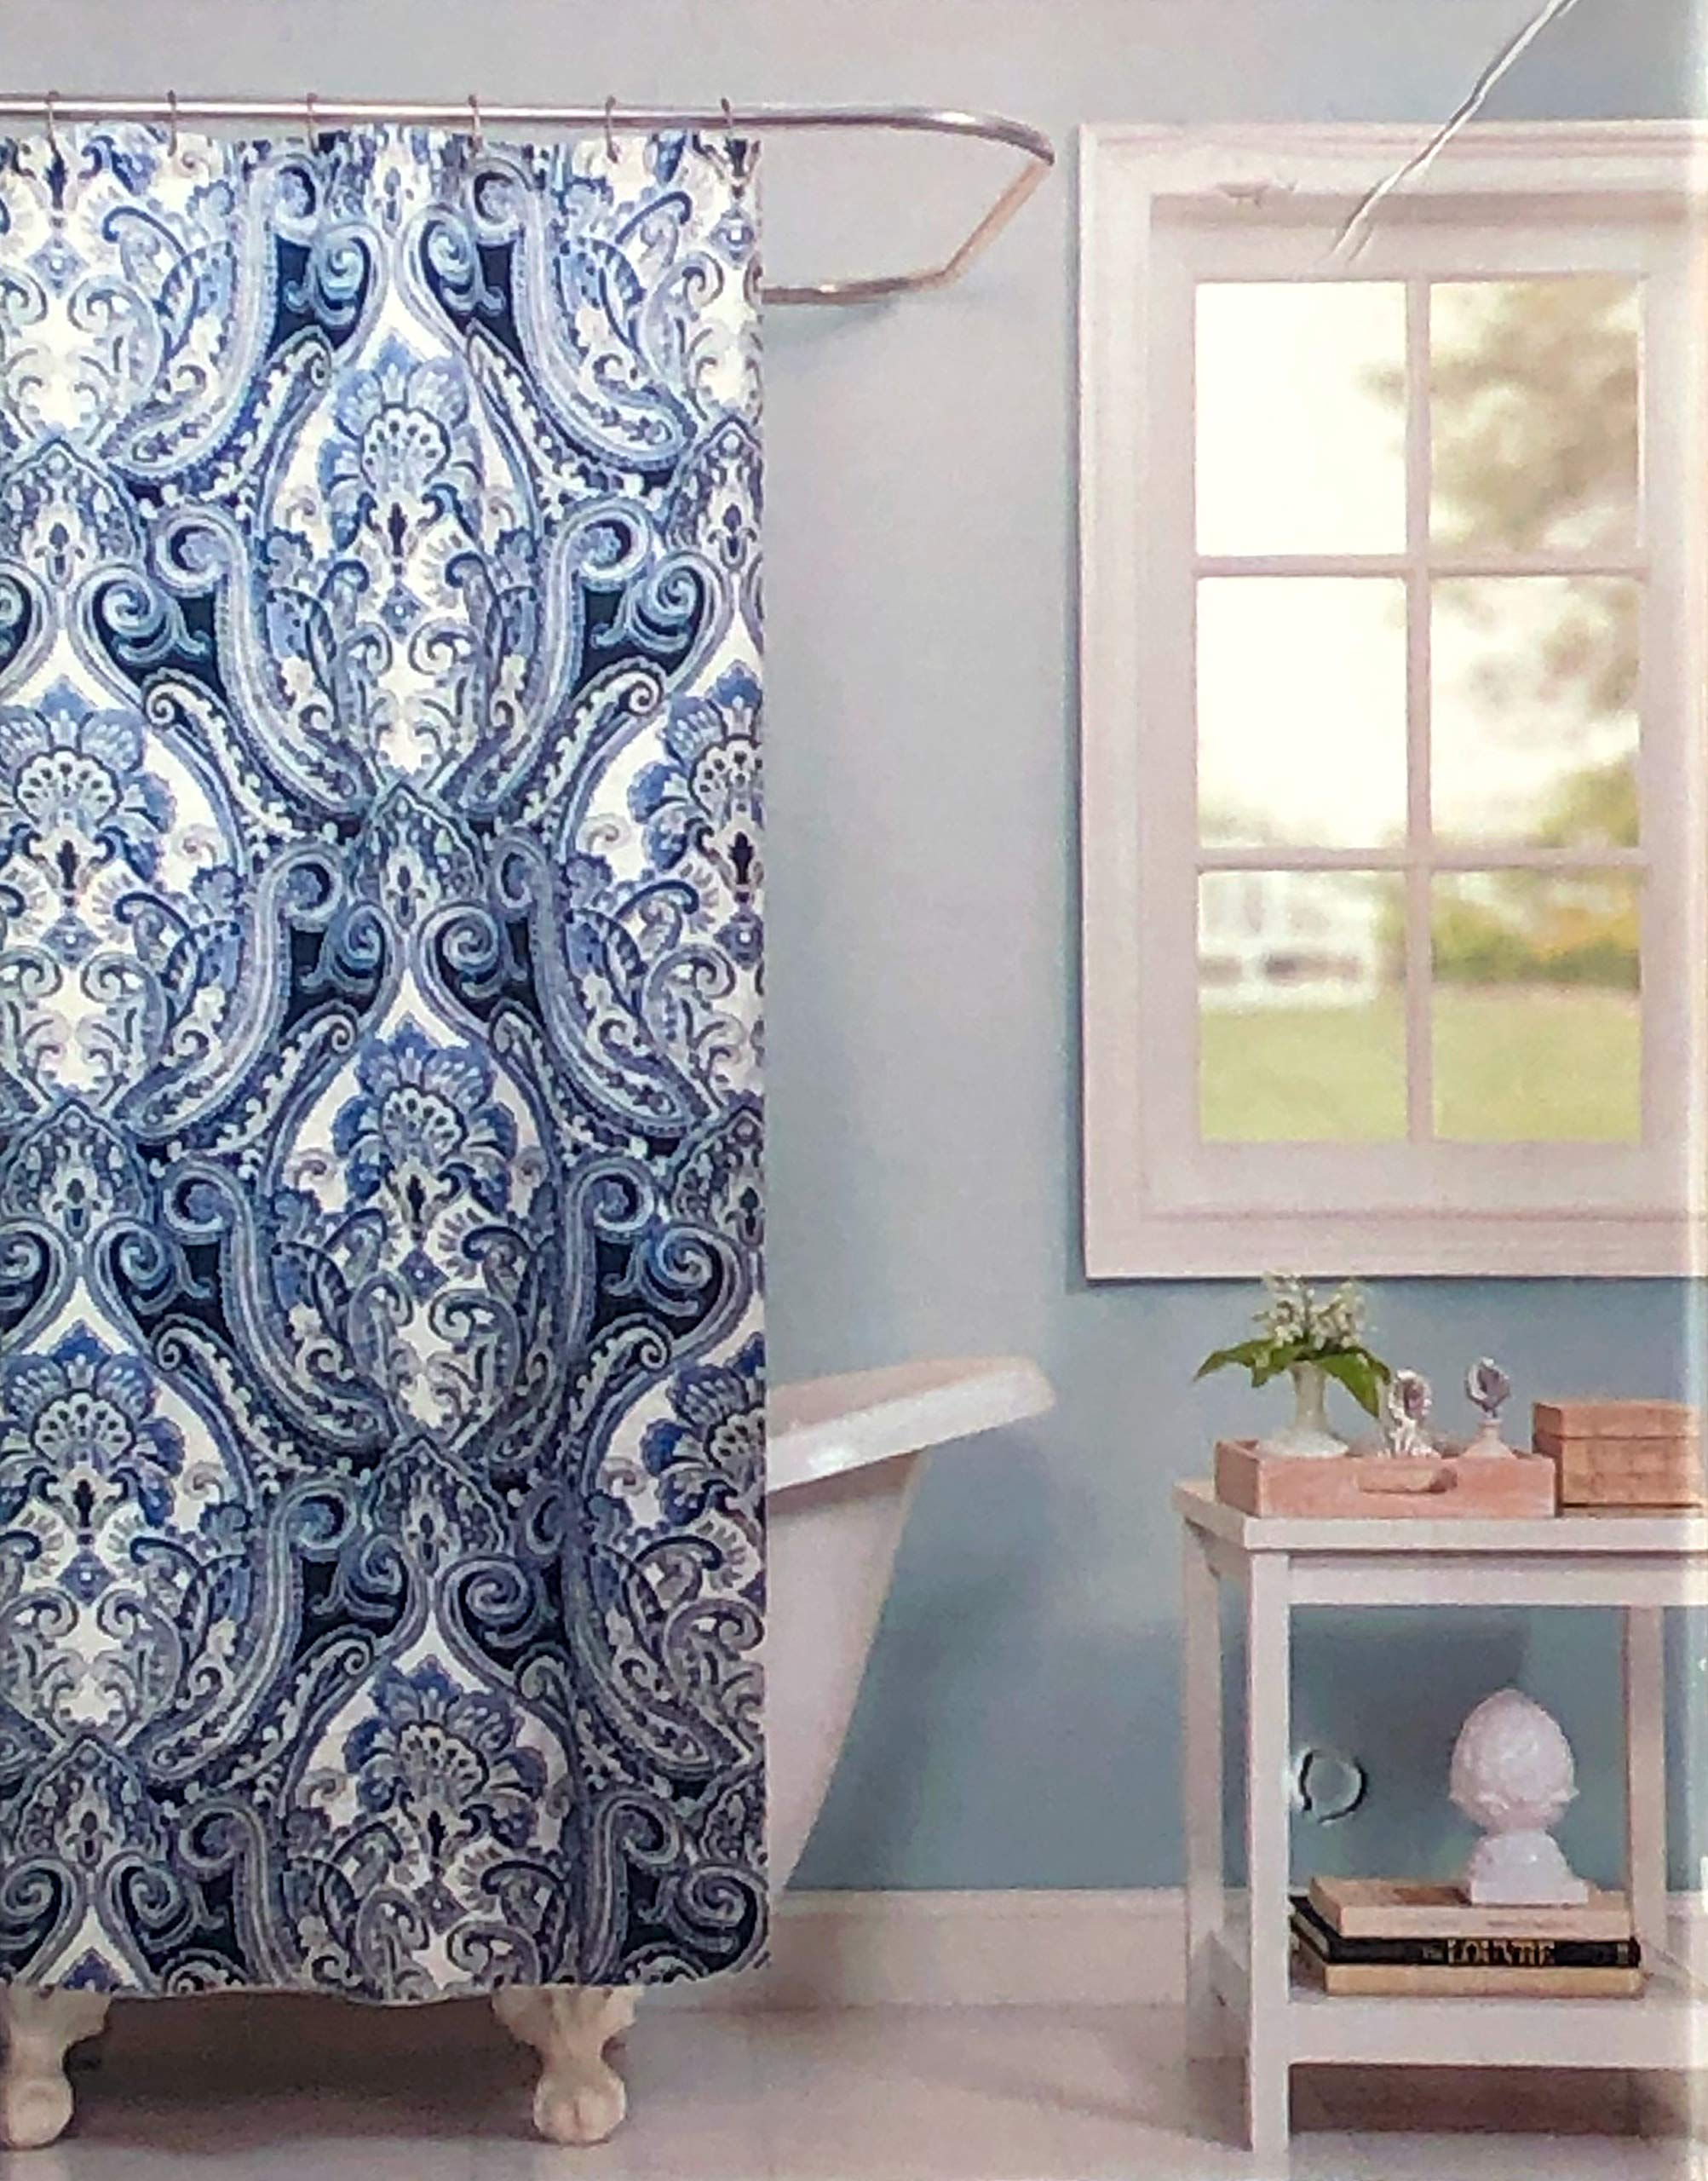 Raymond Waites Fabric Shower Curtain Damask Medallion Pattern in Shades of Blue and Gray on Cream/Off-White - Tamarind Navy